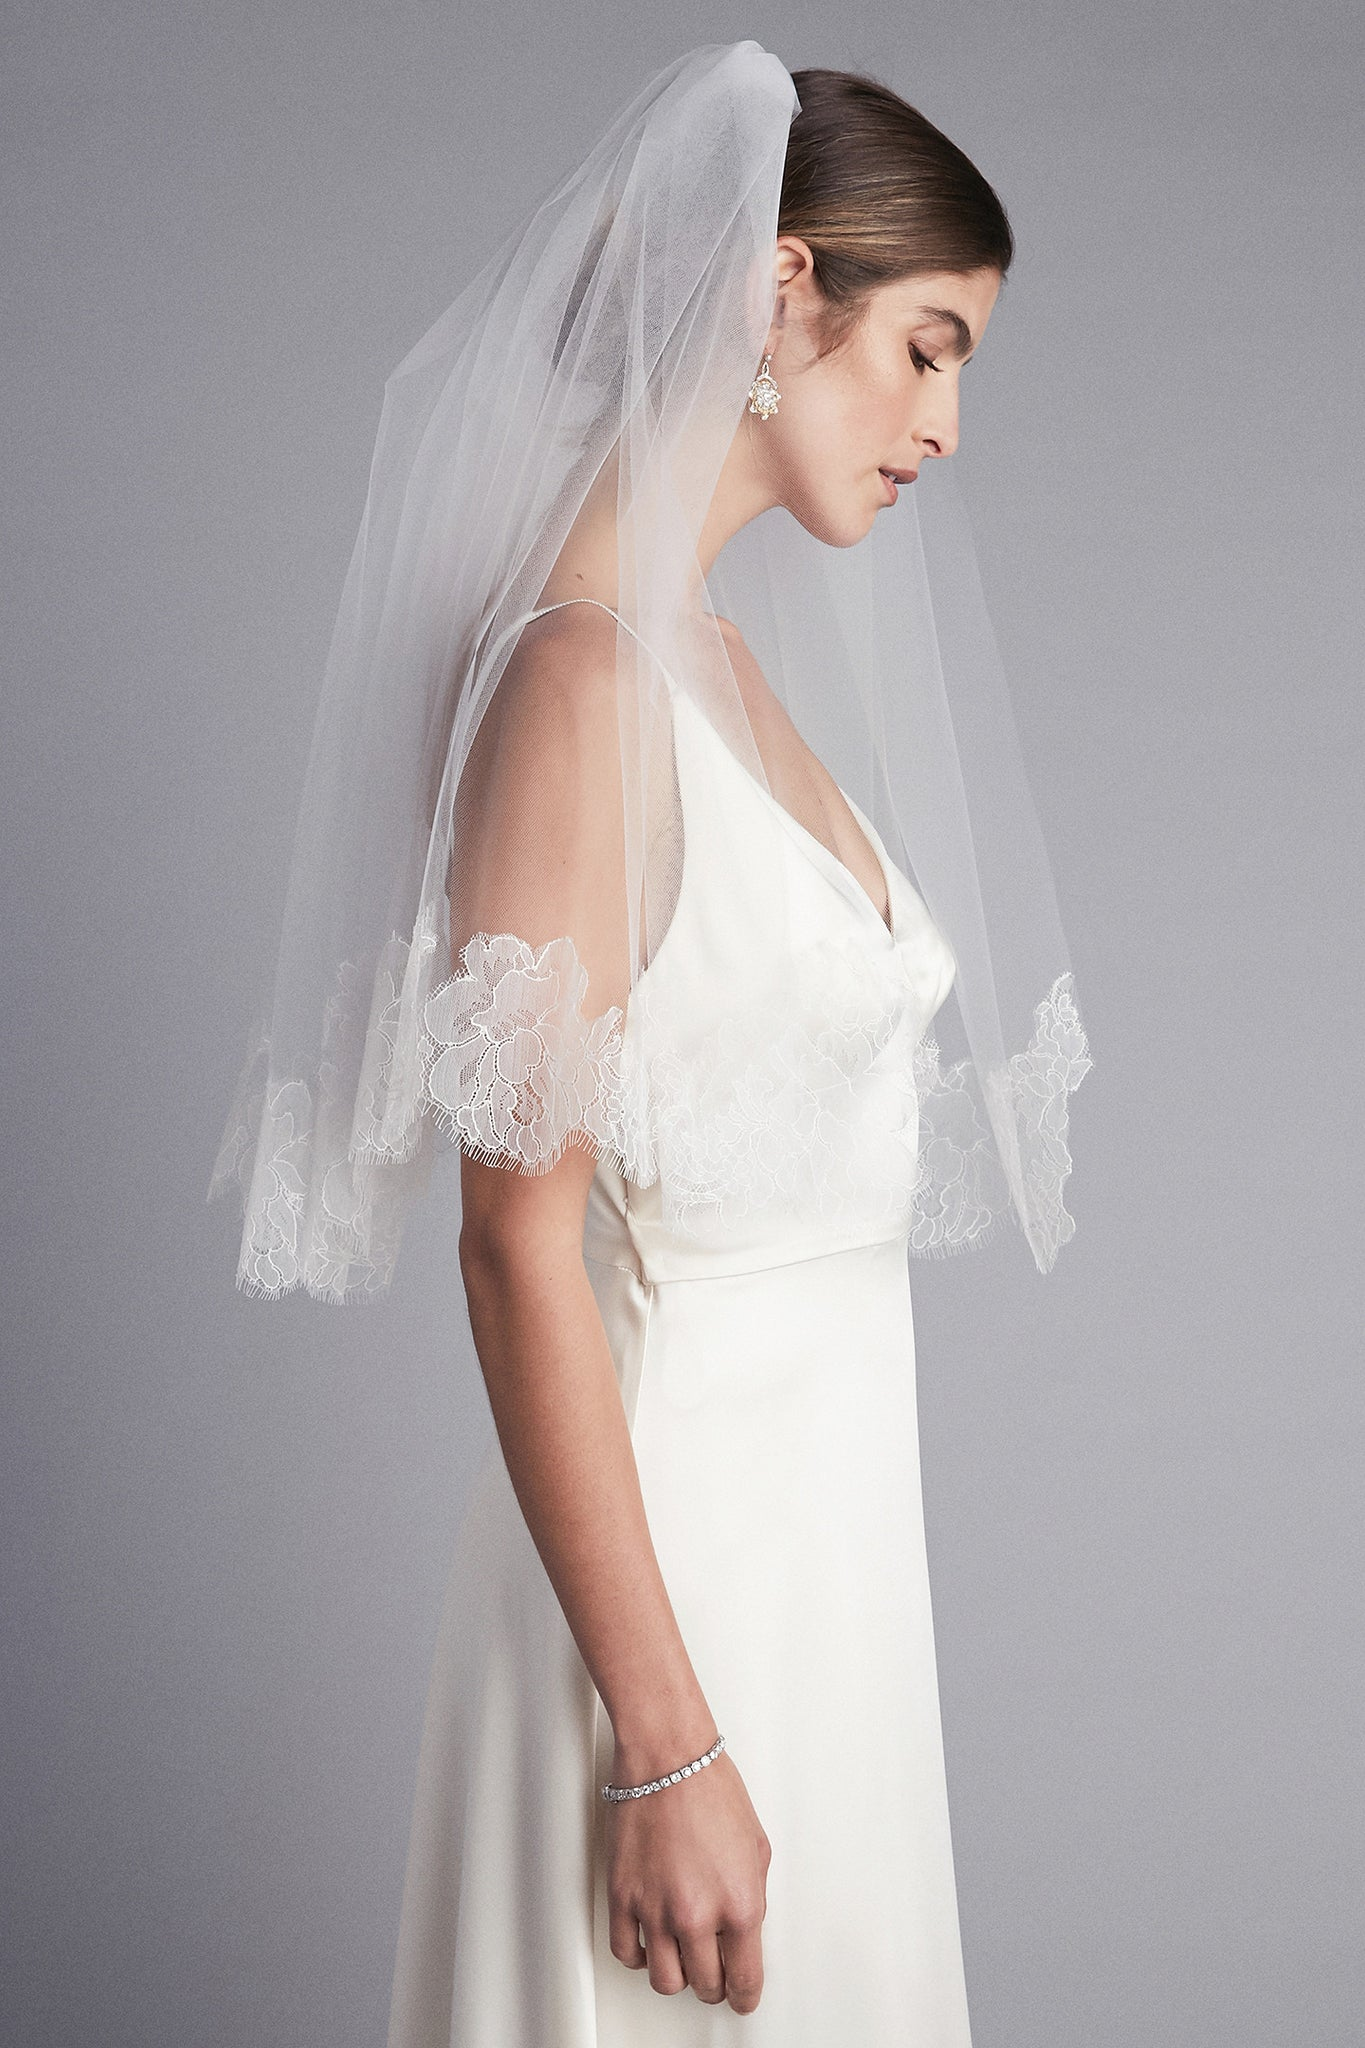 Lace Trimmed Blusher Veil